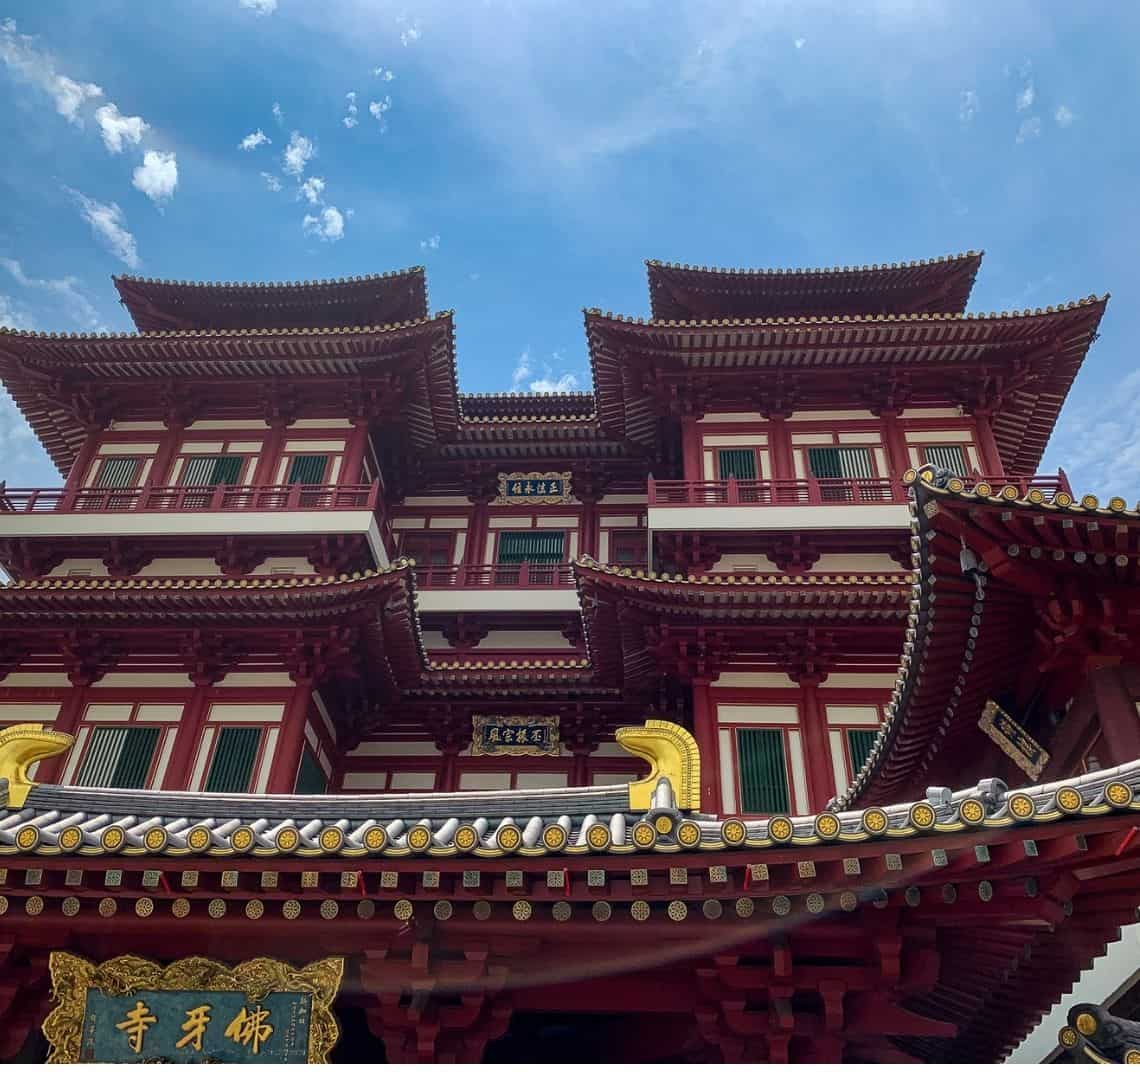 Buddha Tooth Relic Temple has Chinese roofs, white walls and lots of red edging with green shutters on the windows. above it the sky is blue with just a few clouds in the sky.